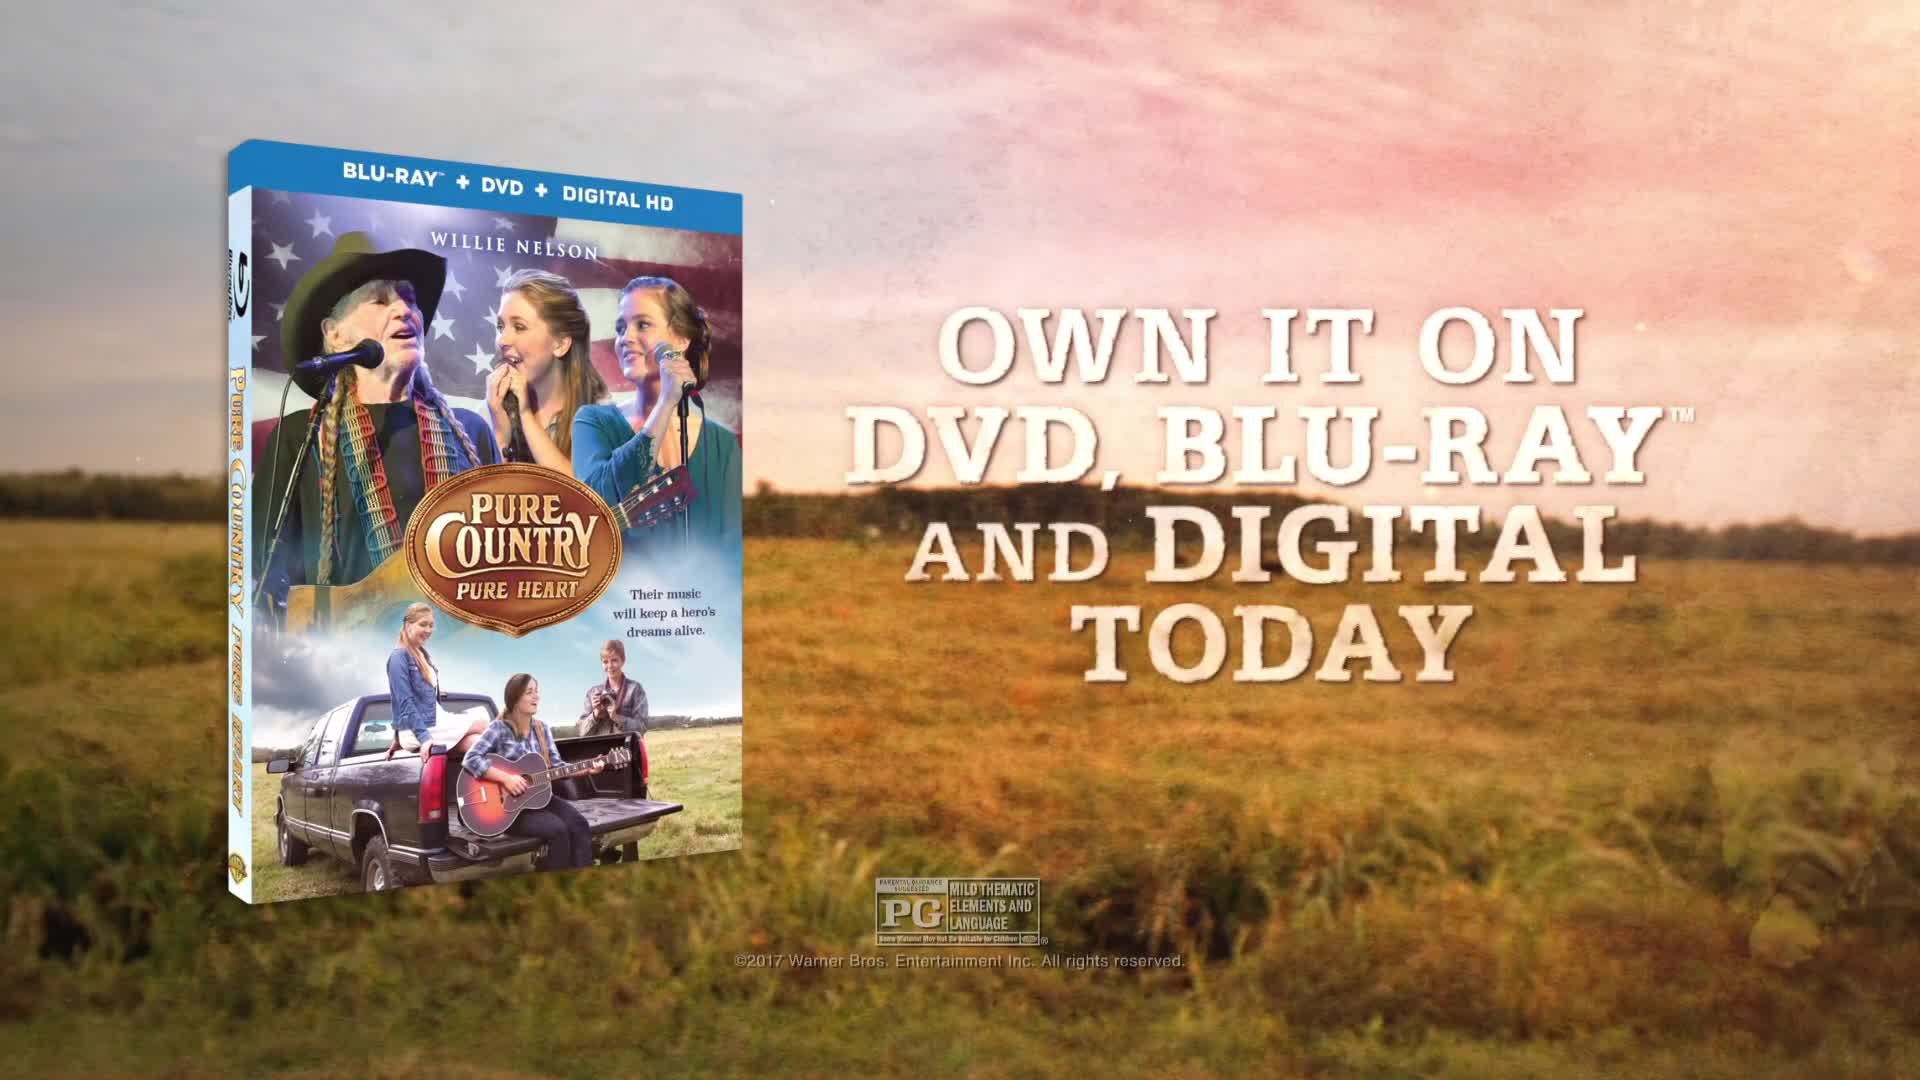 """WWE Studios' """"Pure Country: Pure Heart"""" is available now on Blu-ray, DVD and Digital HD. 